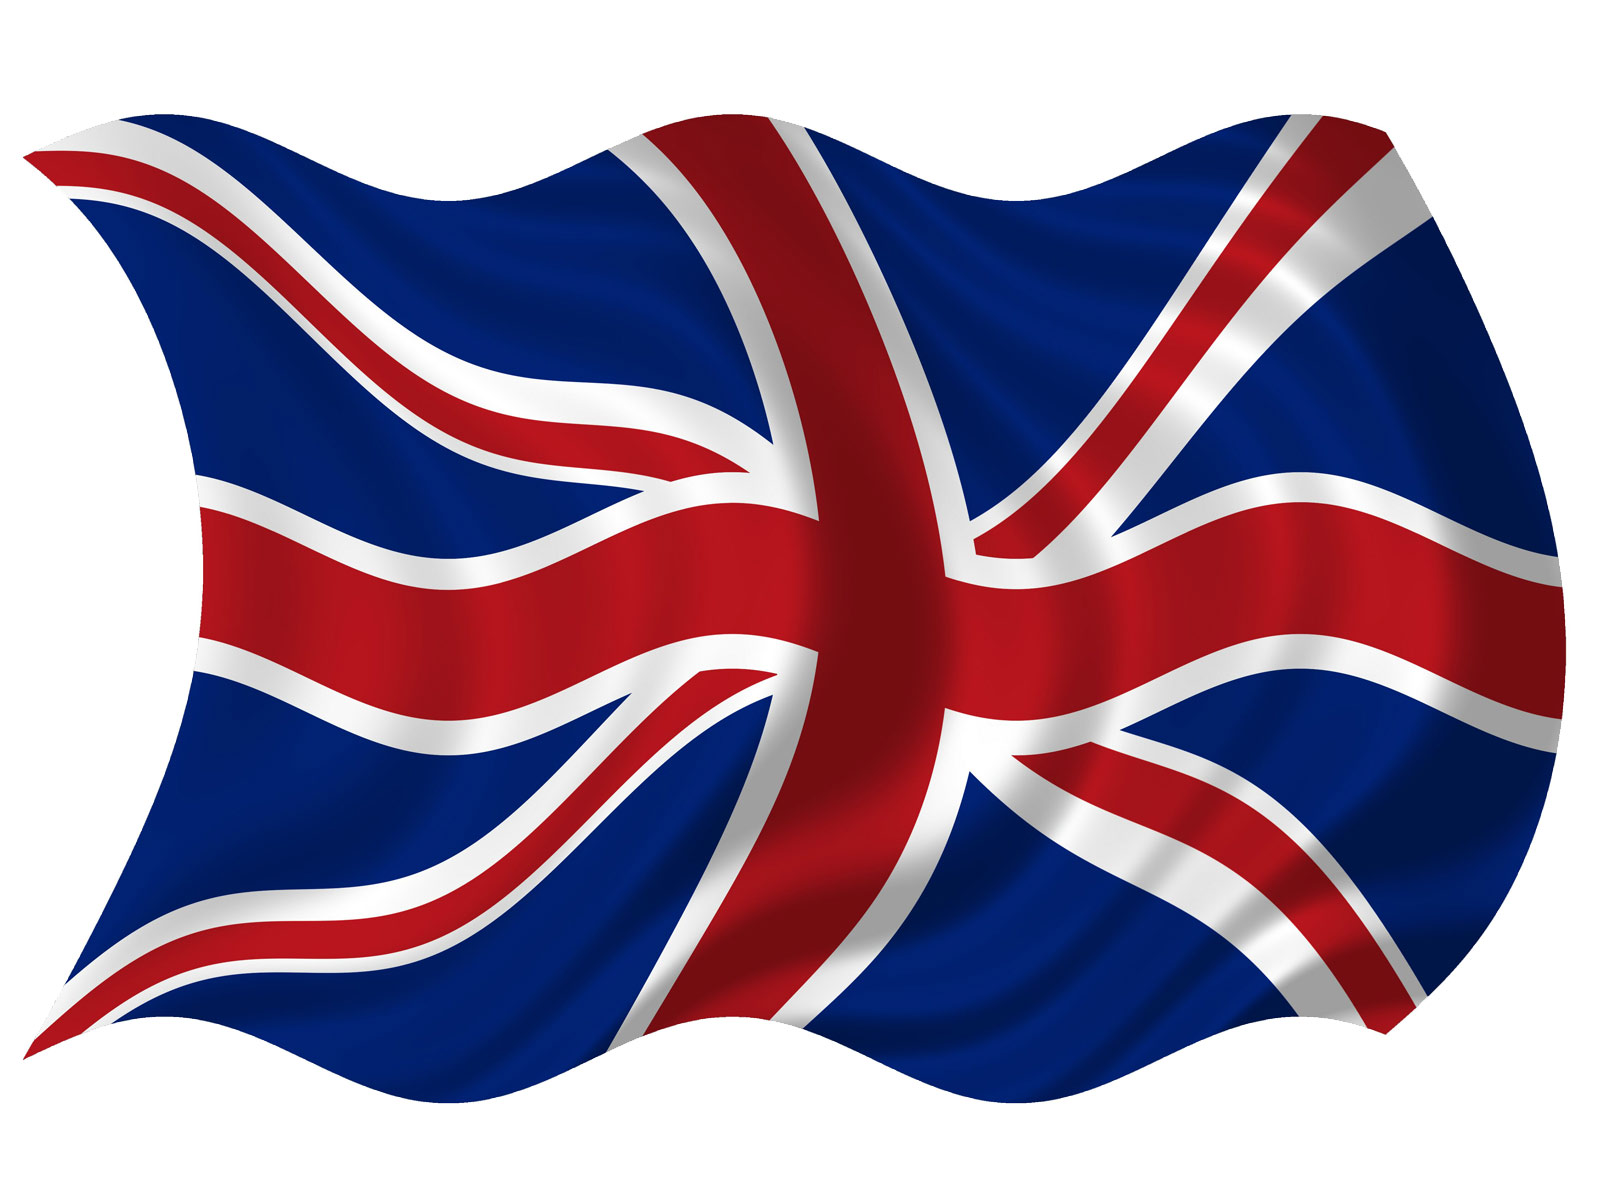 Flag of united kingdom clipart svg transparent stock United Kingdom Flag Clipart - ClipArt Best svg transparent stock